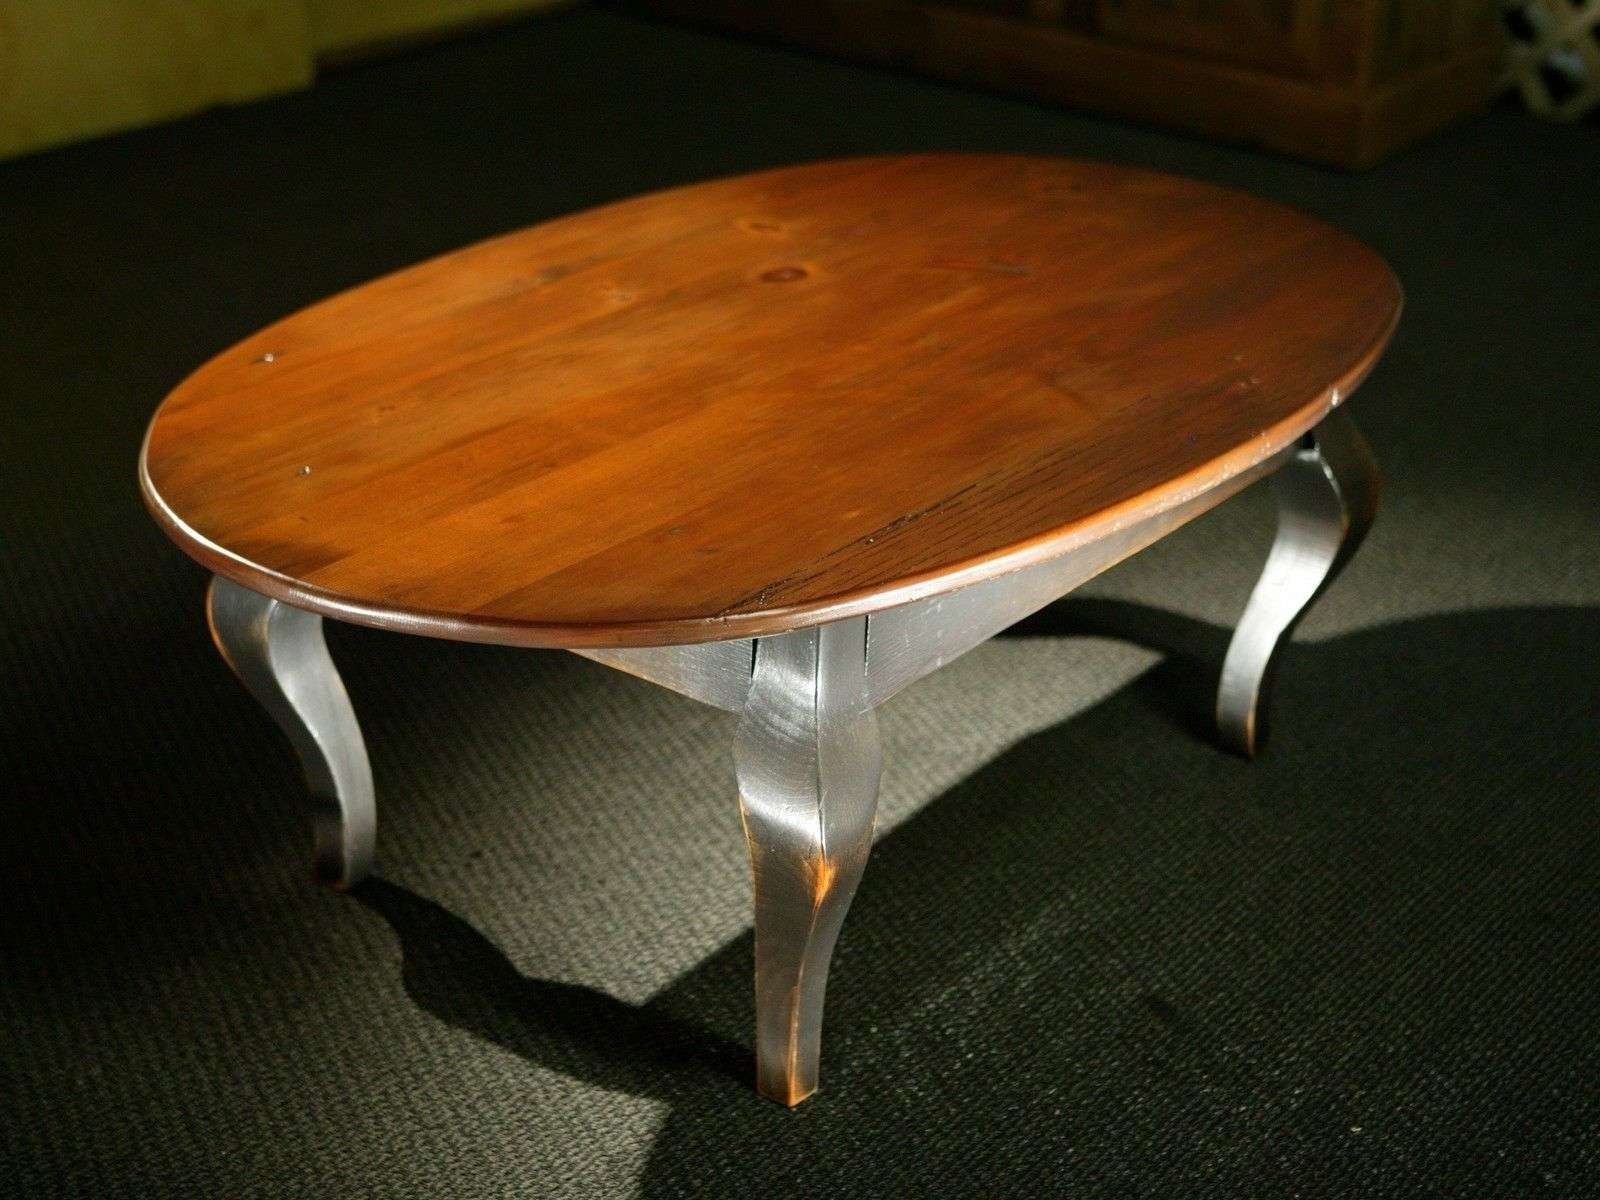 Hand Crafted Oval Wood Coffee Table With Black French Legs Inside Popular Oval Wood Coffee Tables (Gallery 7 of 20)